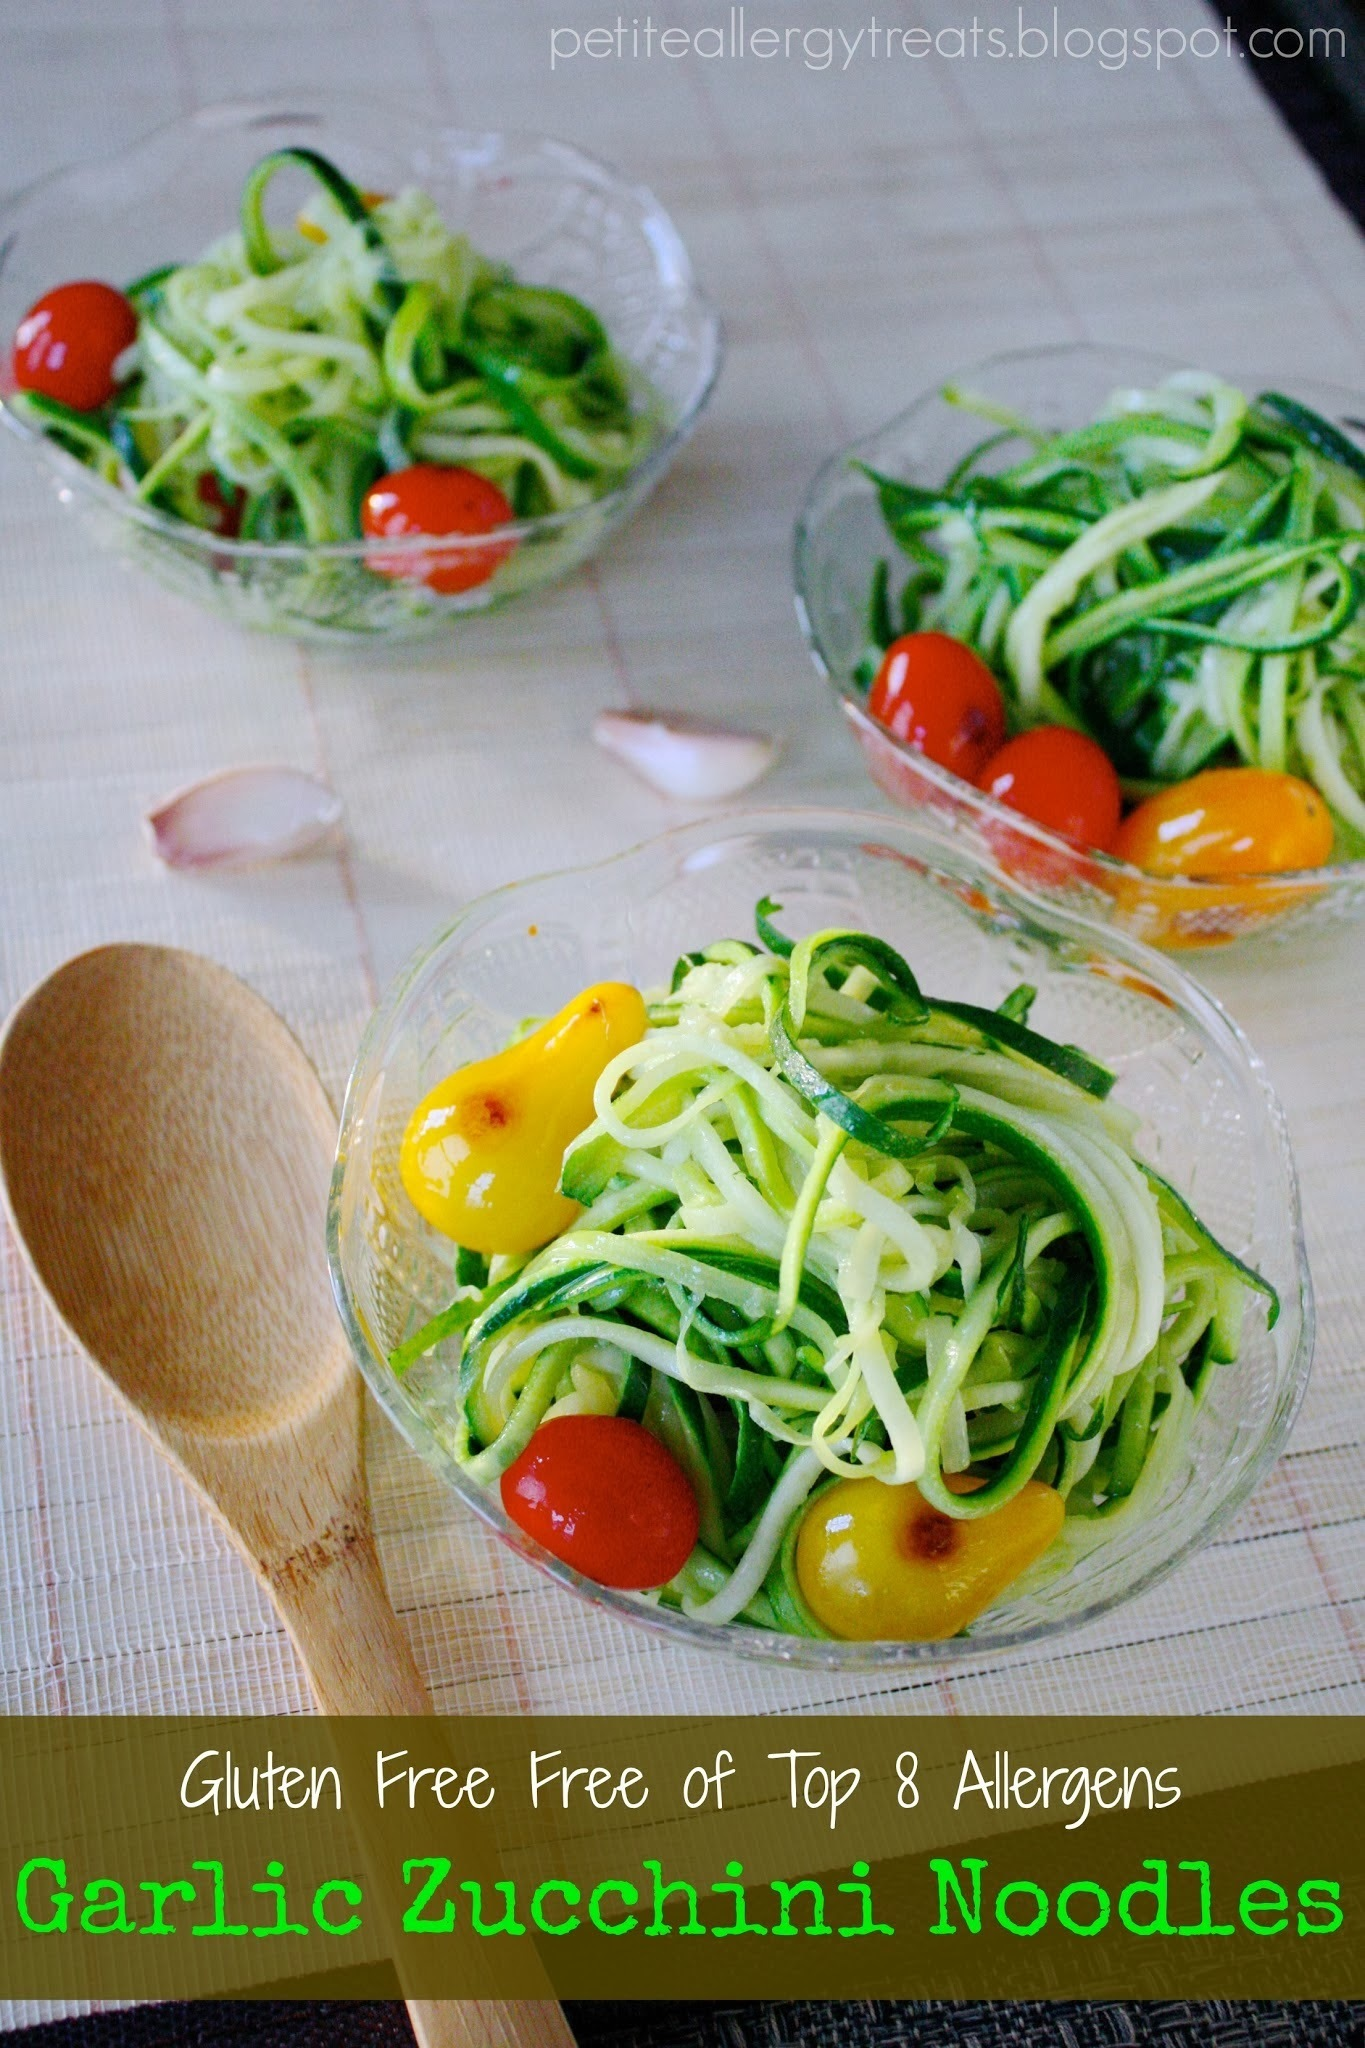 Gluten Free Garlic Zucchini Noodles- Free of the Top 8 Food Allergens